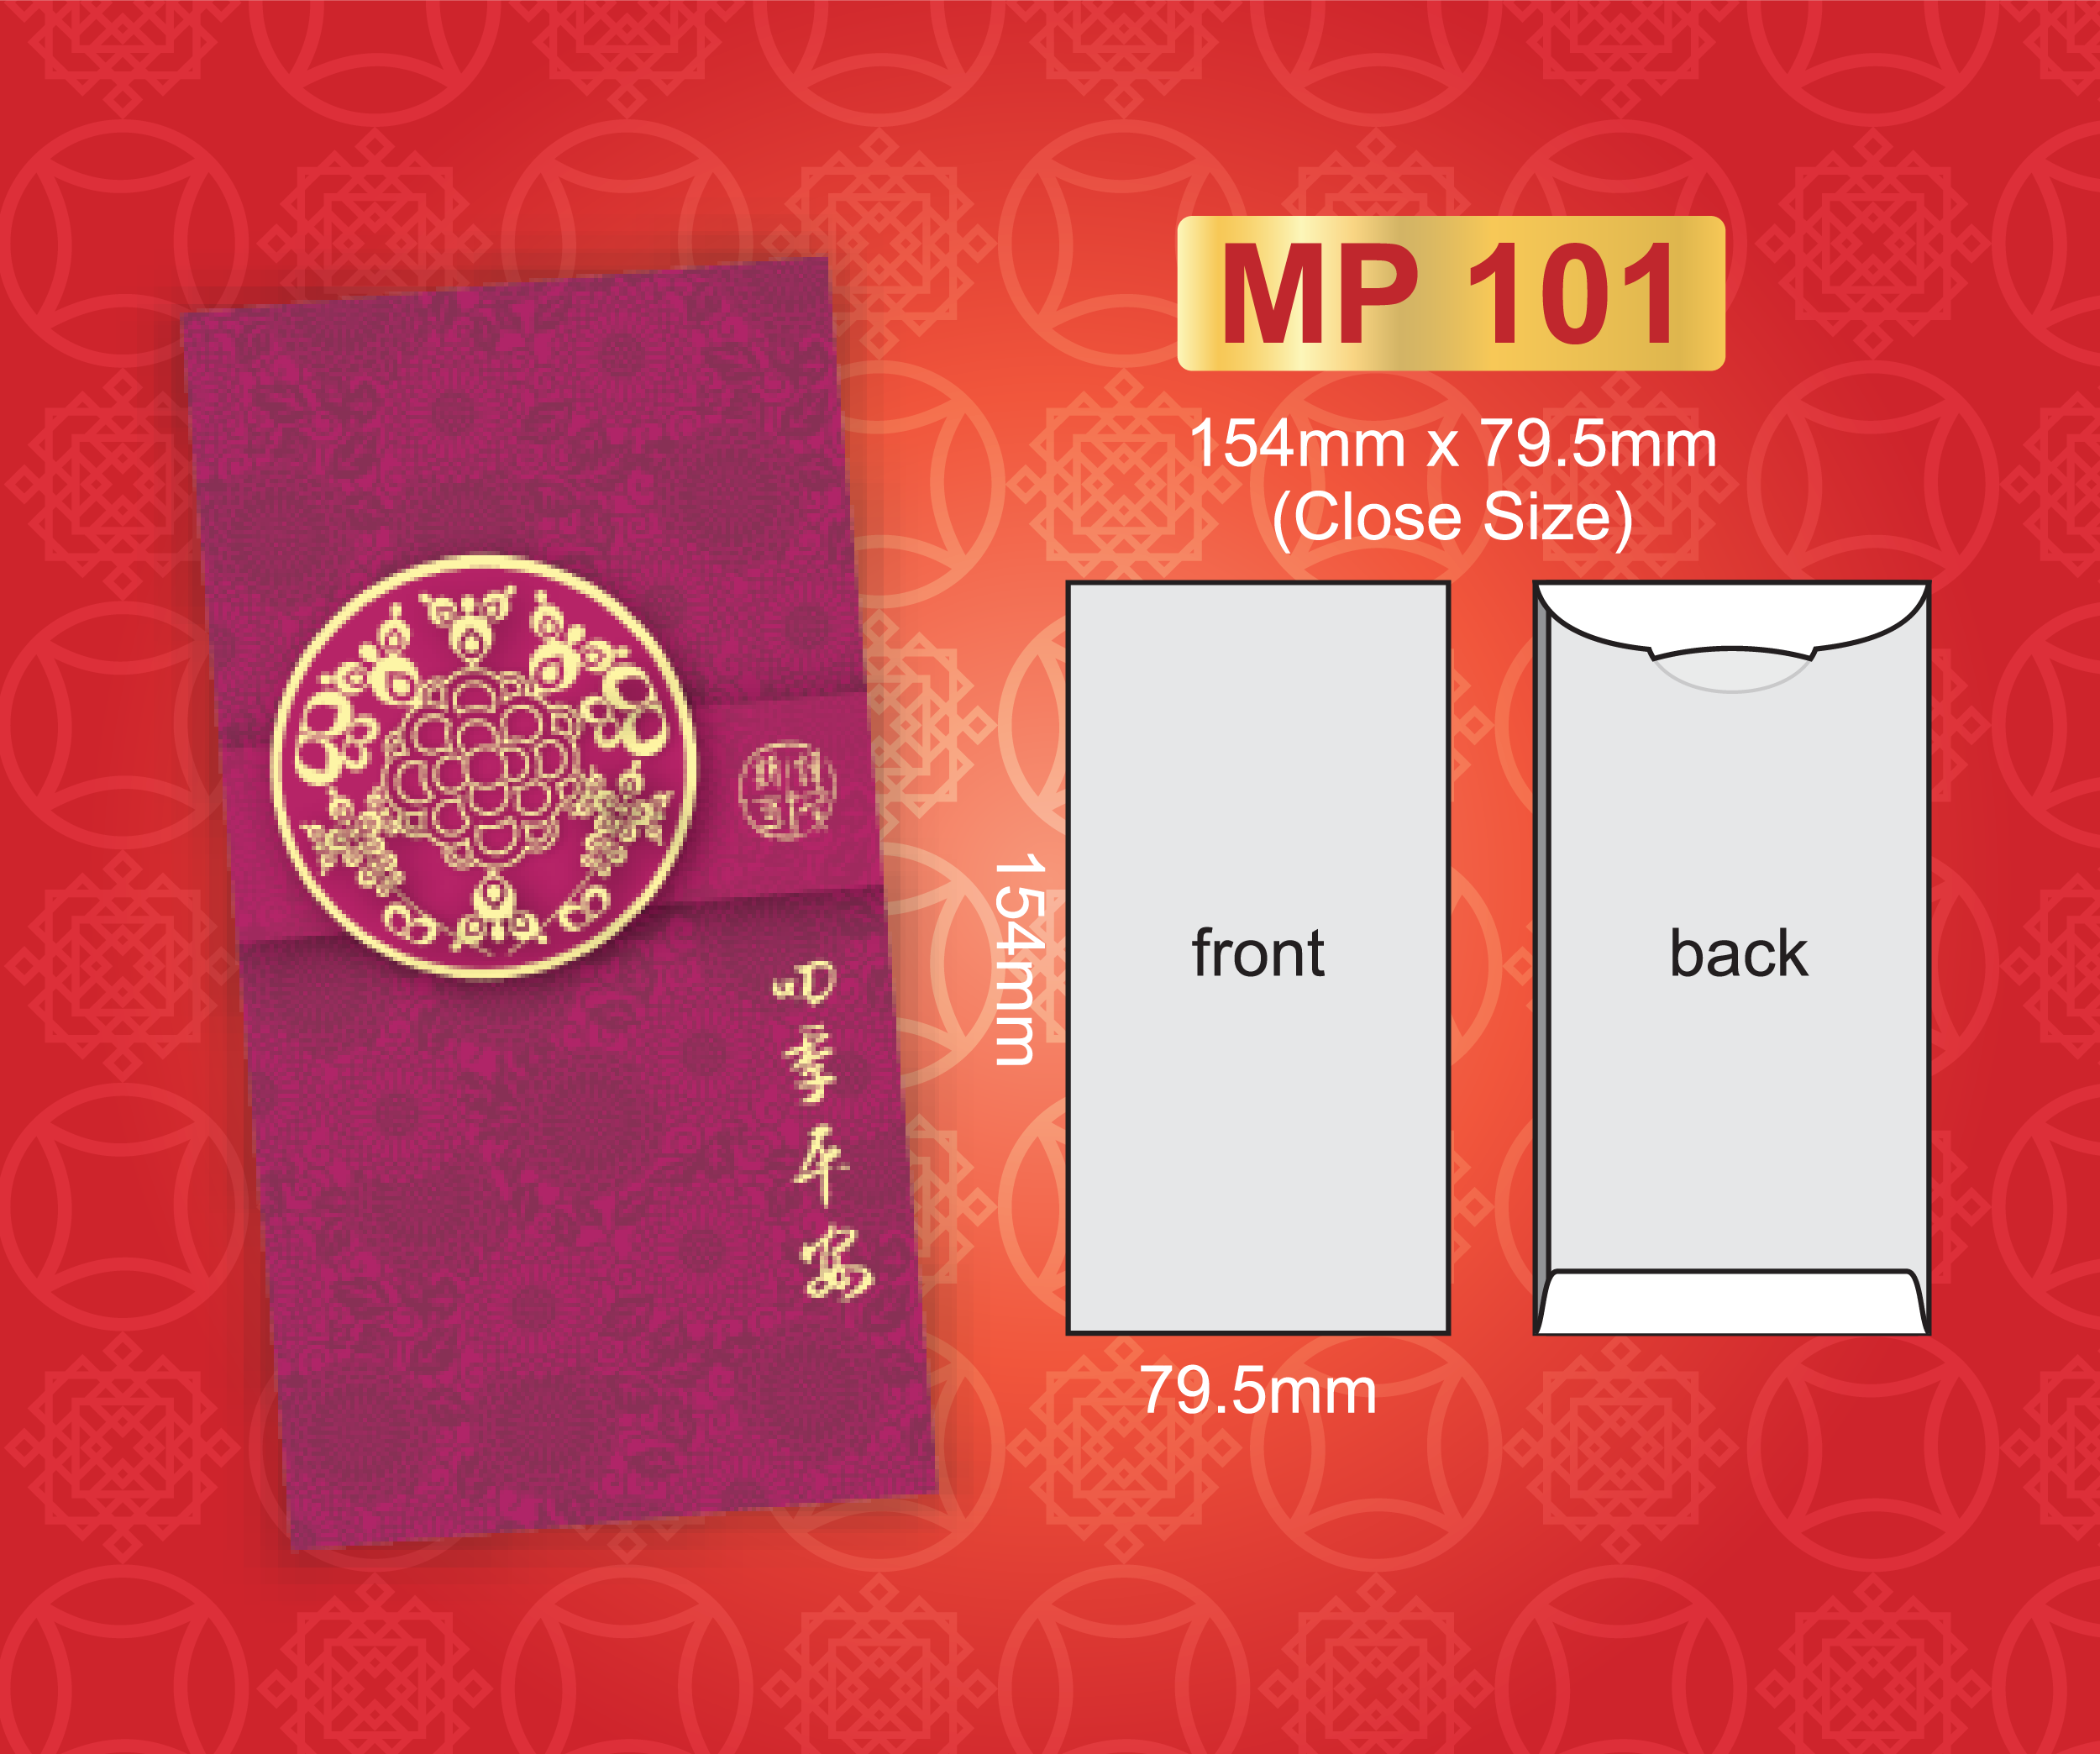 Money Packet (Linen Material) Money Packet Guide Portrait MP101